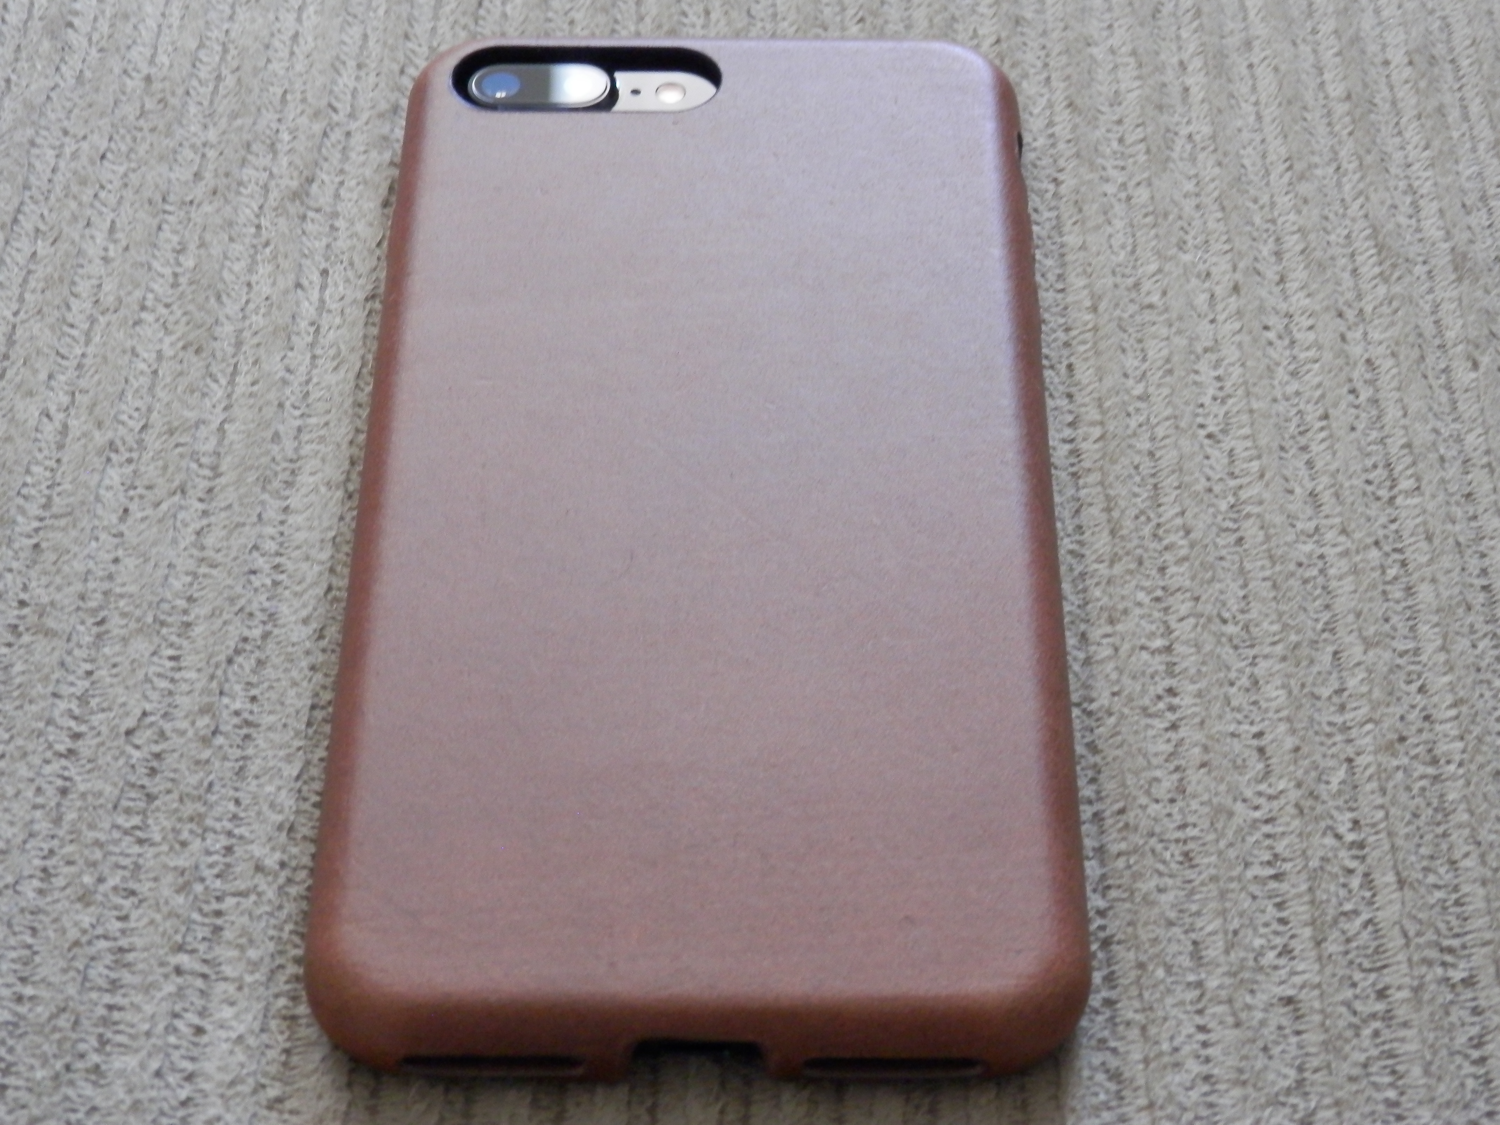 official photos 508ad 602b0 Nomad's Horween leather case for iPhone crosses luxury with protection